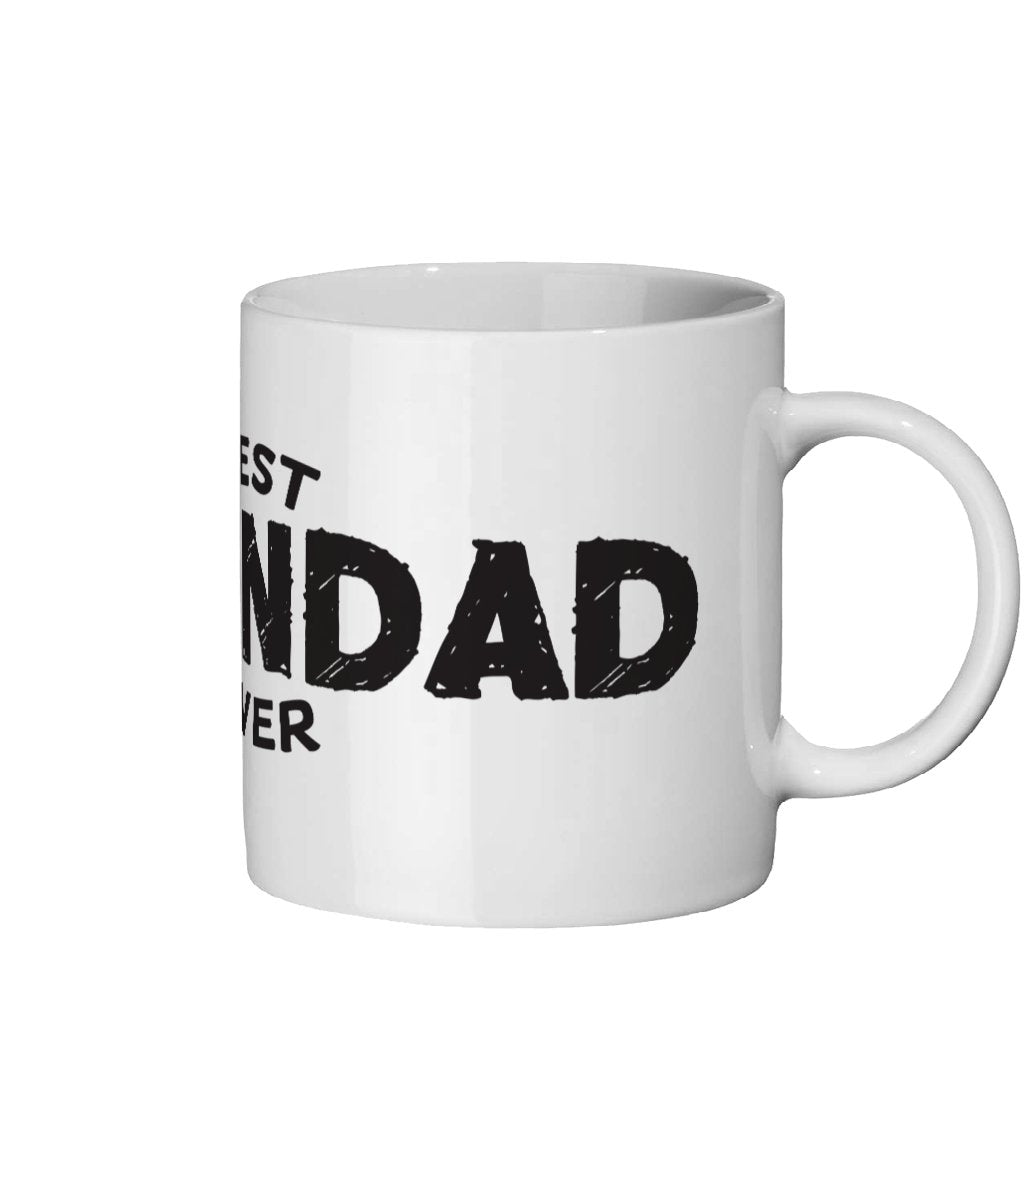 Best Grandad Ever Ceramic Mug 11oz - The Gift Project